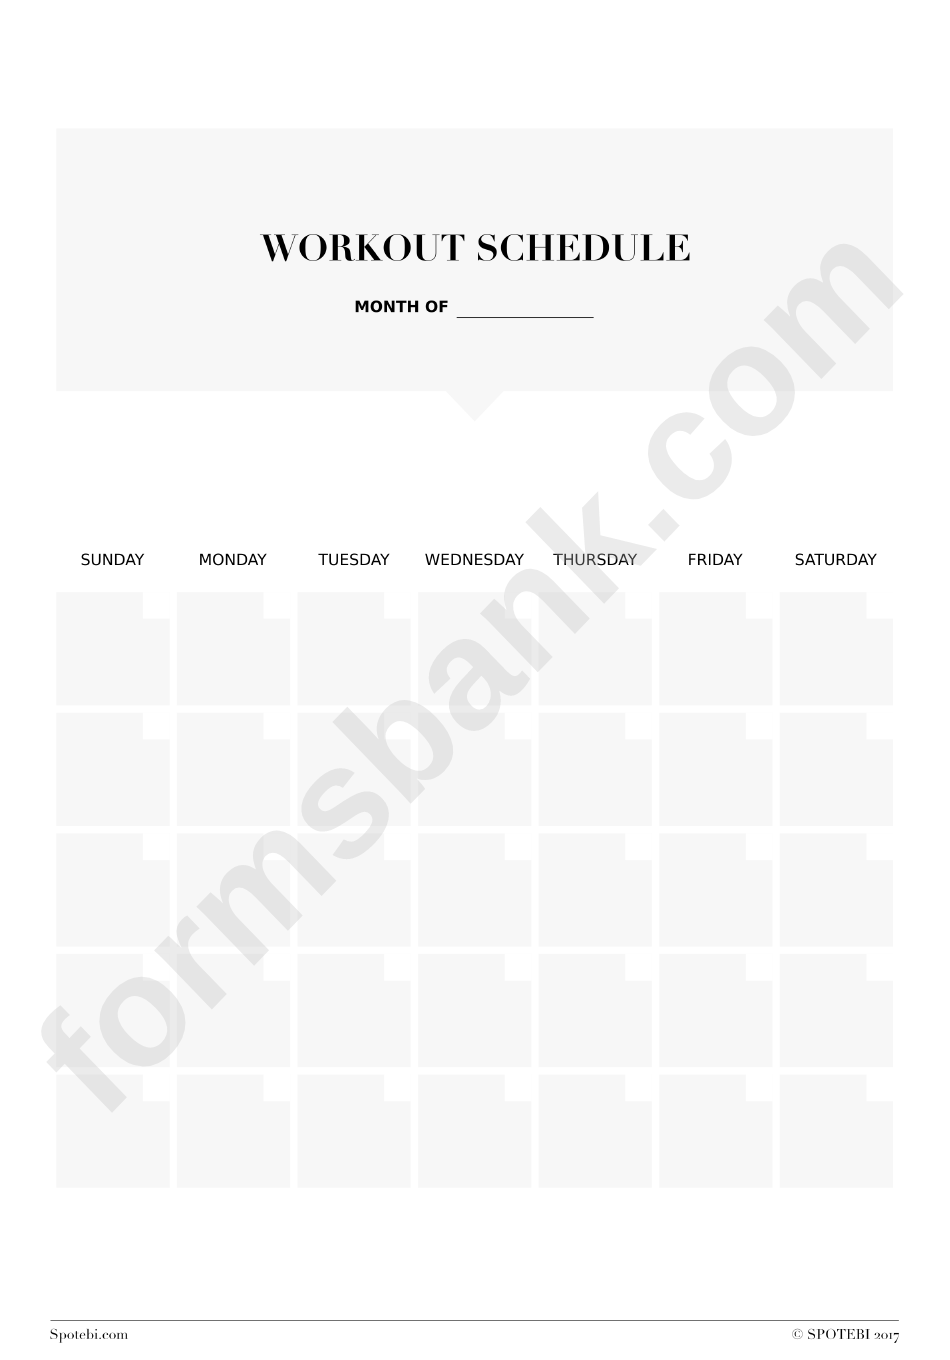 Workout Schedule Template printable pdf download